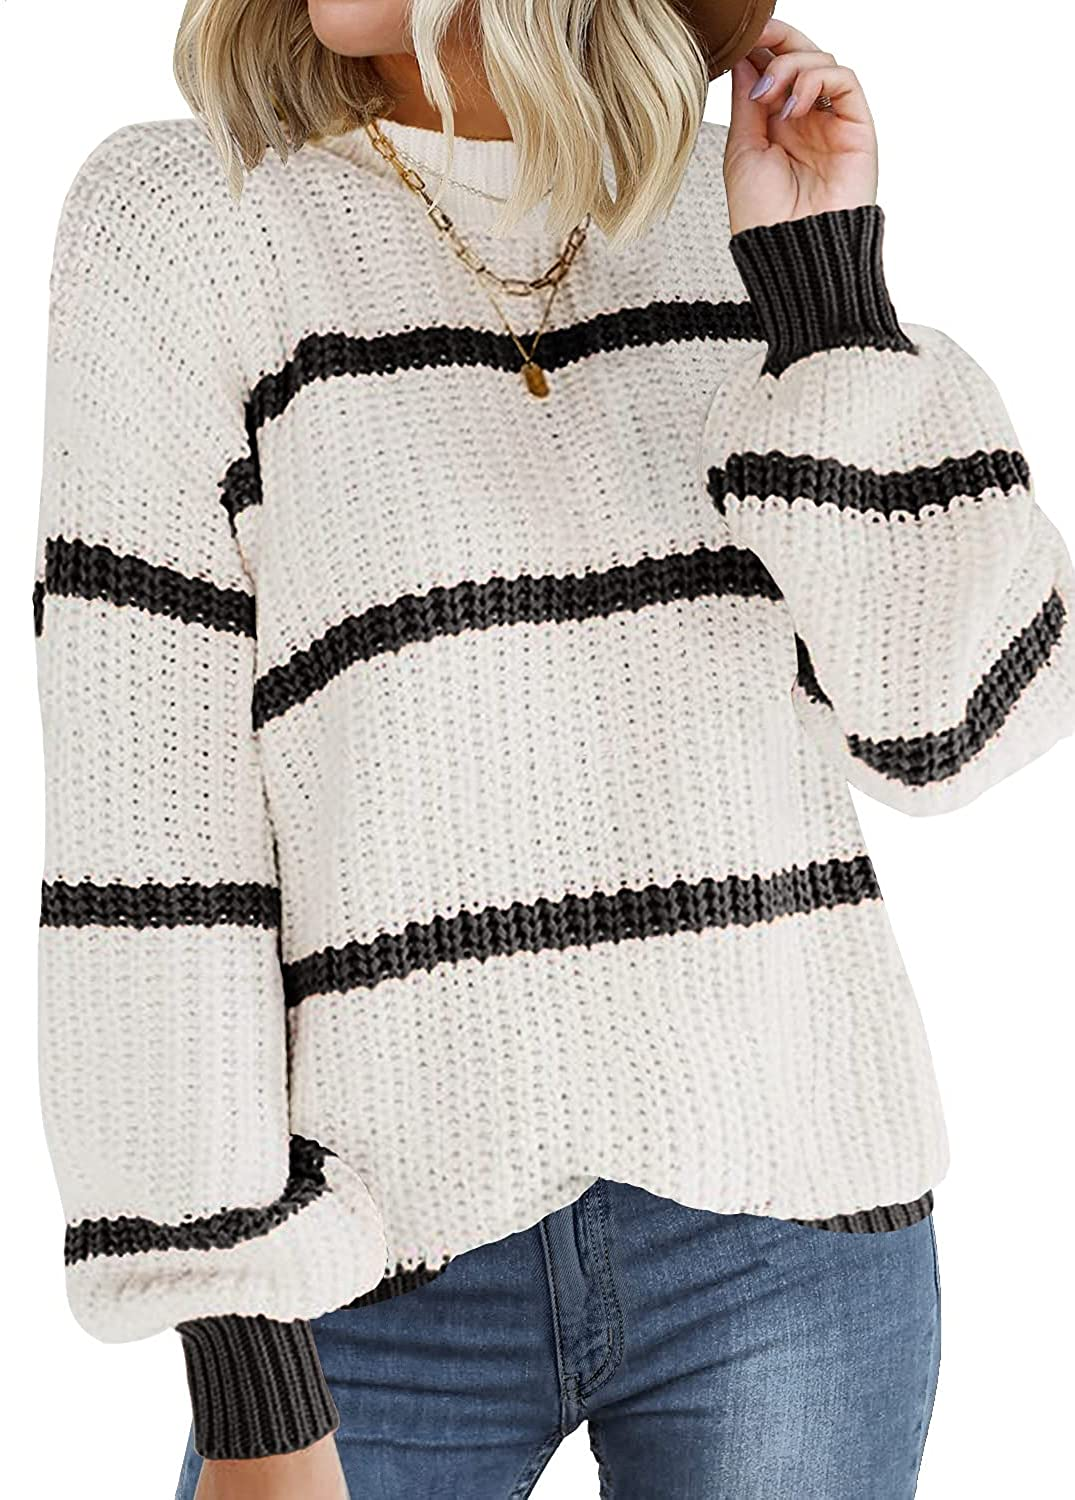 DOROSE Womens Sweater Long Sleeve Striped Color Block Loose Knit Pullover Sweaters Tops